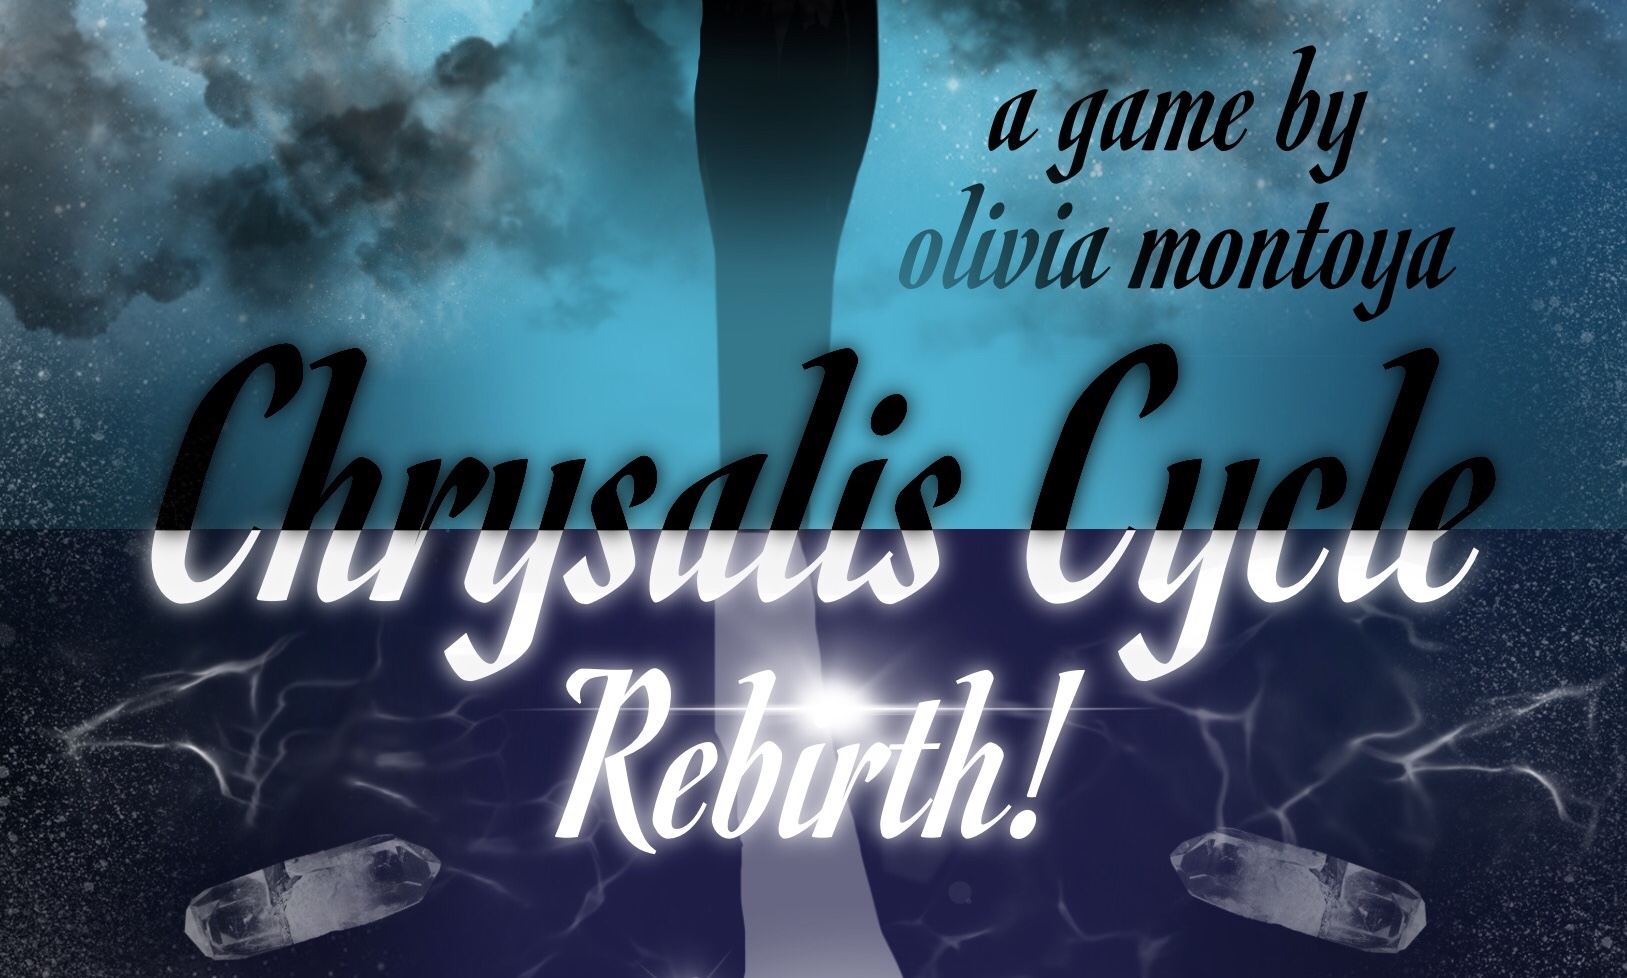 Chrysalis Cycle Rebirth!